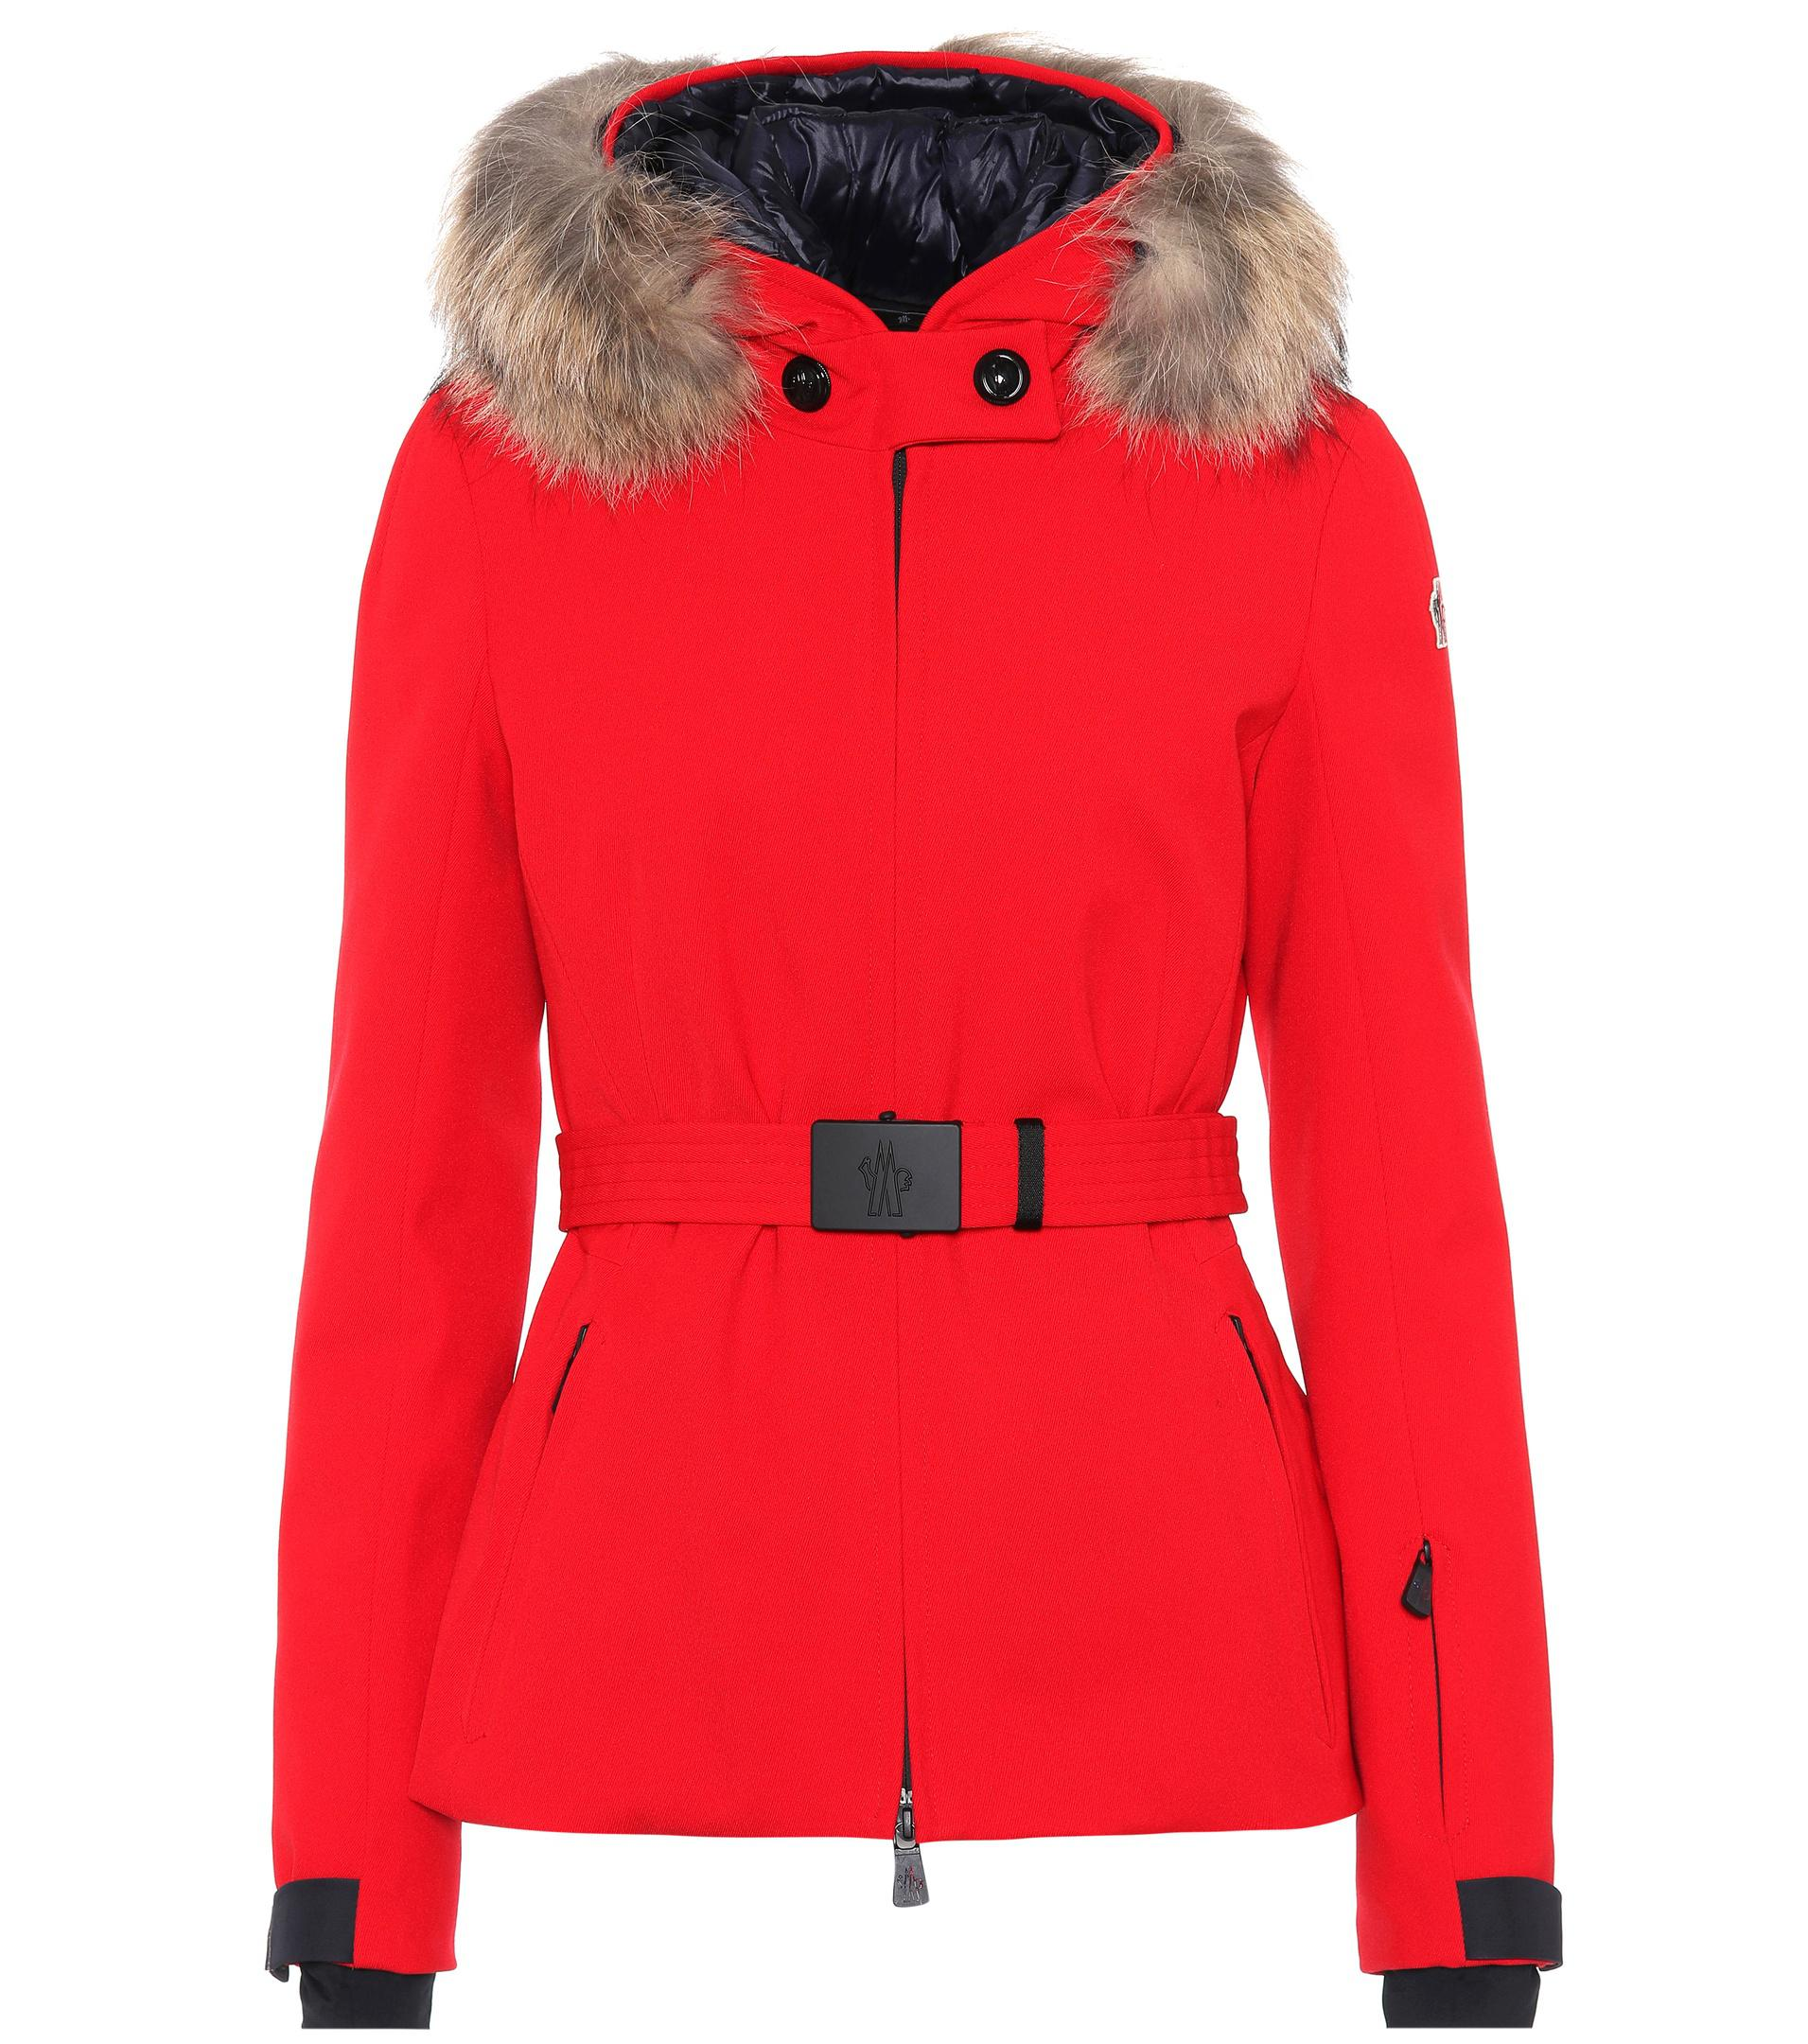 7e23f7cb6 wholesale moncler red ski jacket ec9e7 7b08f